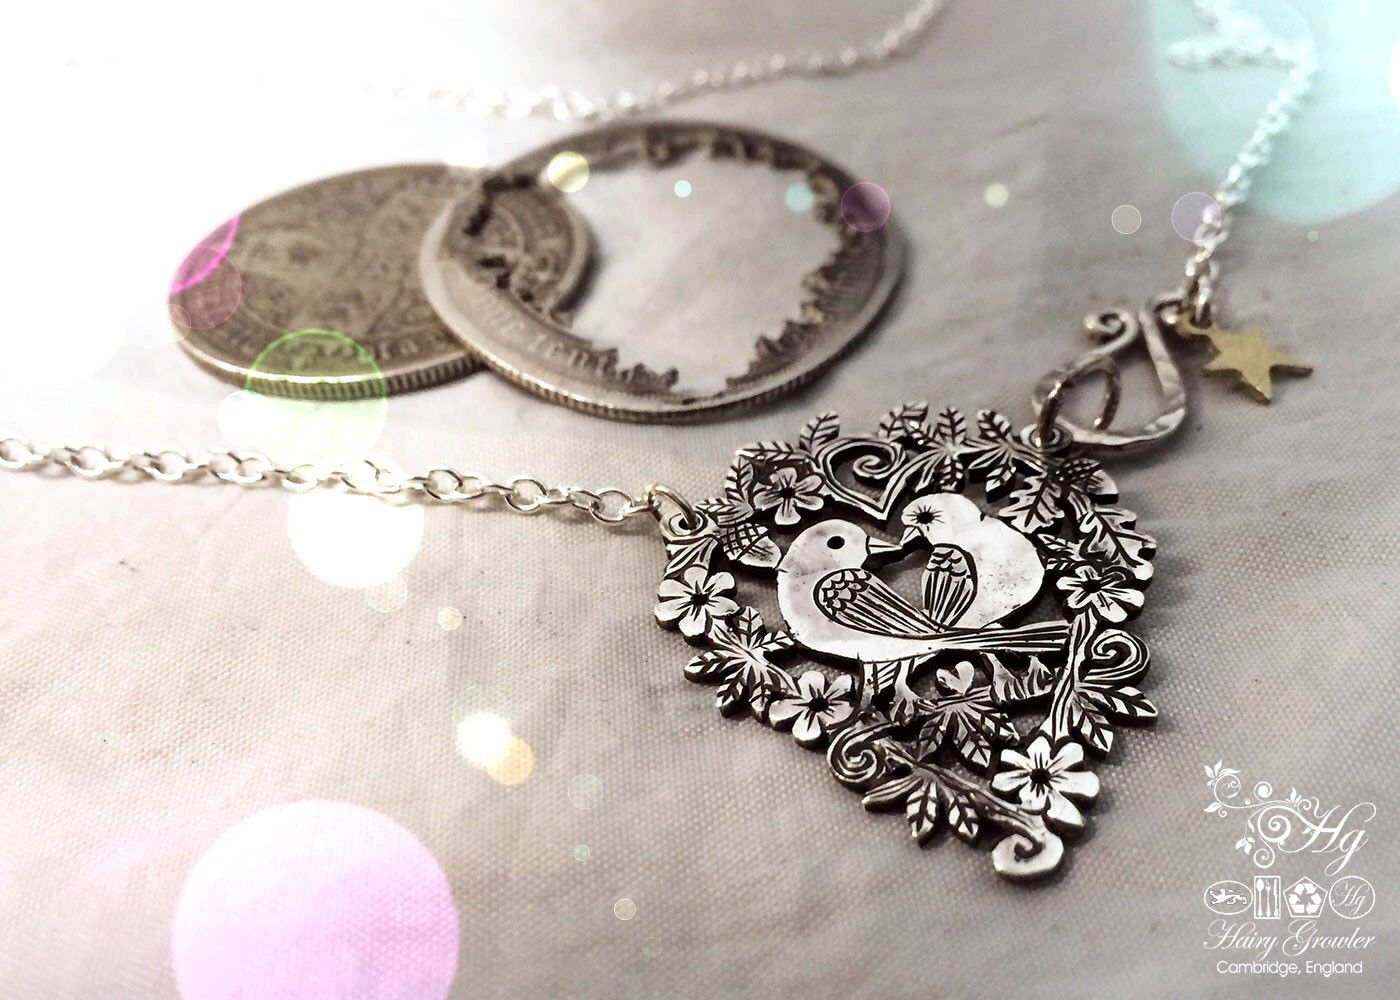 Handmade and recycled sterling silver sweet lovebirds necklace